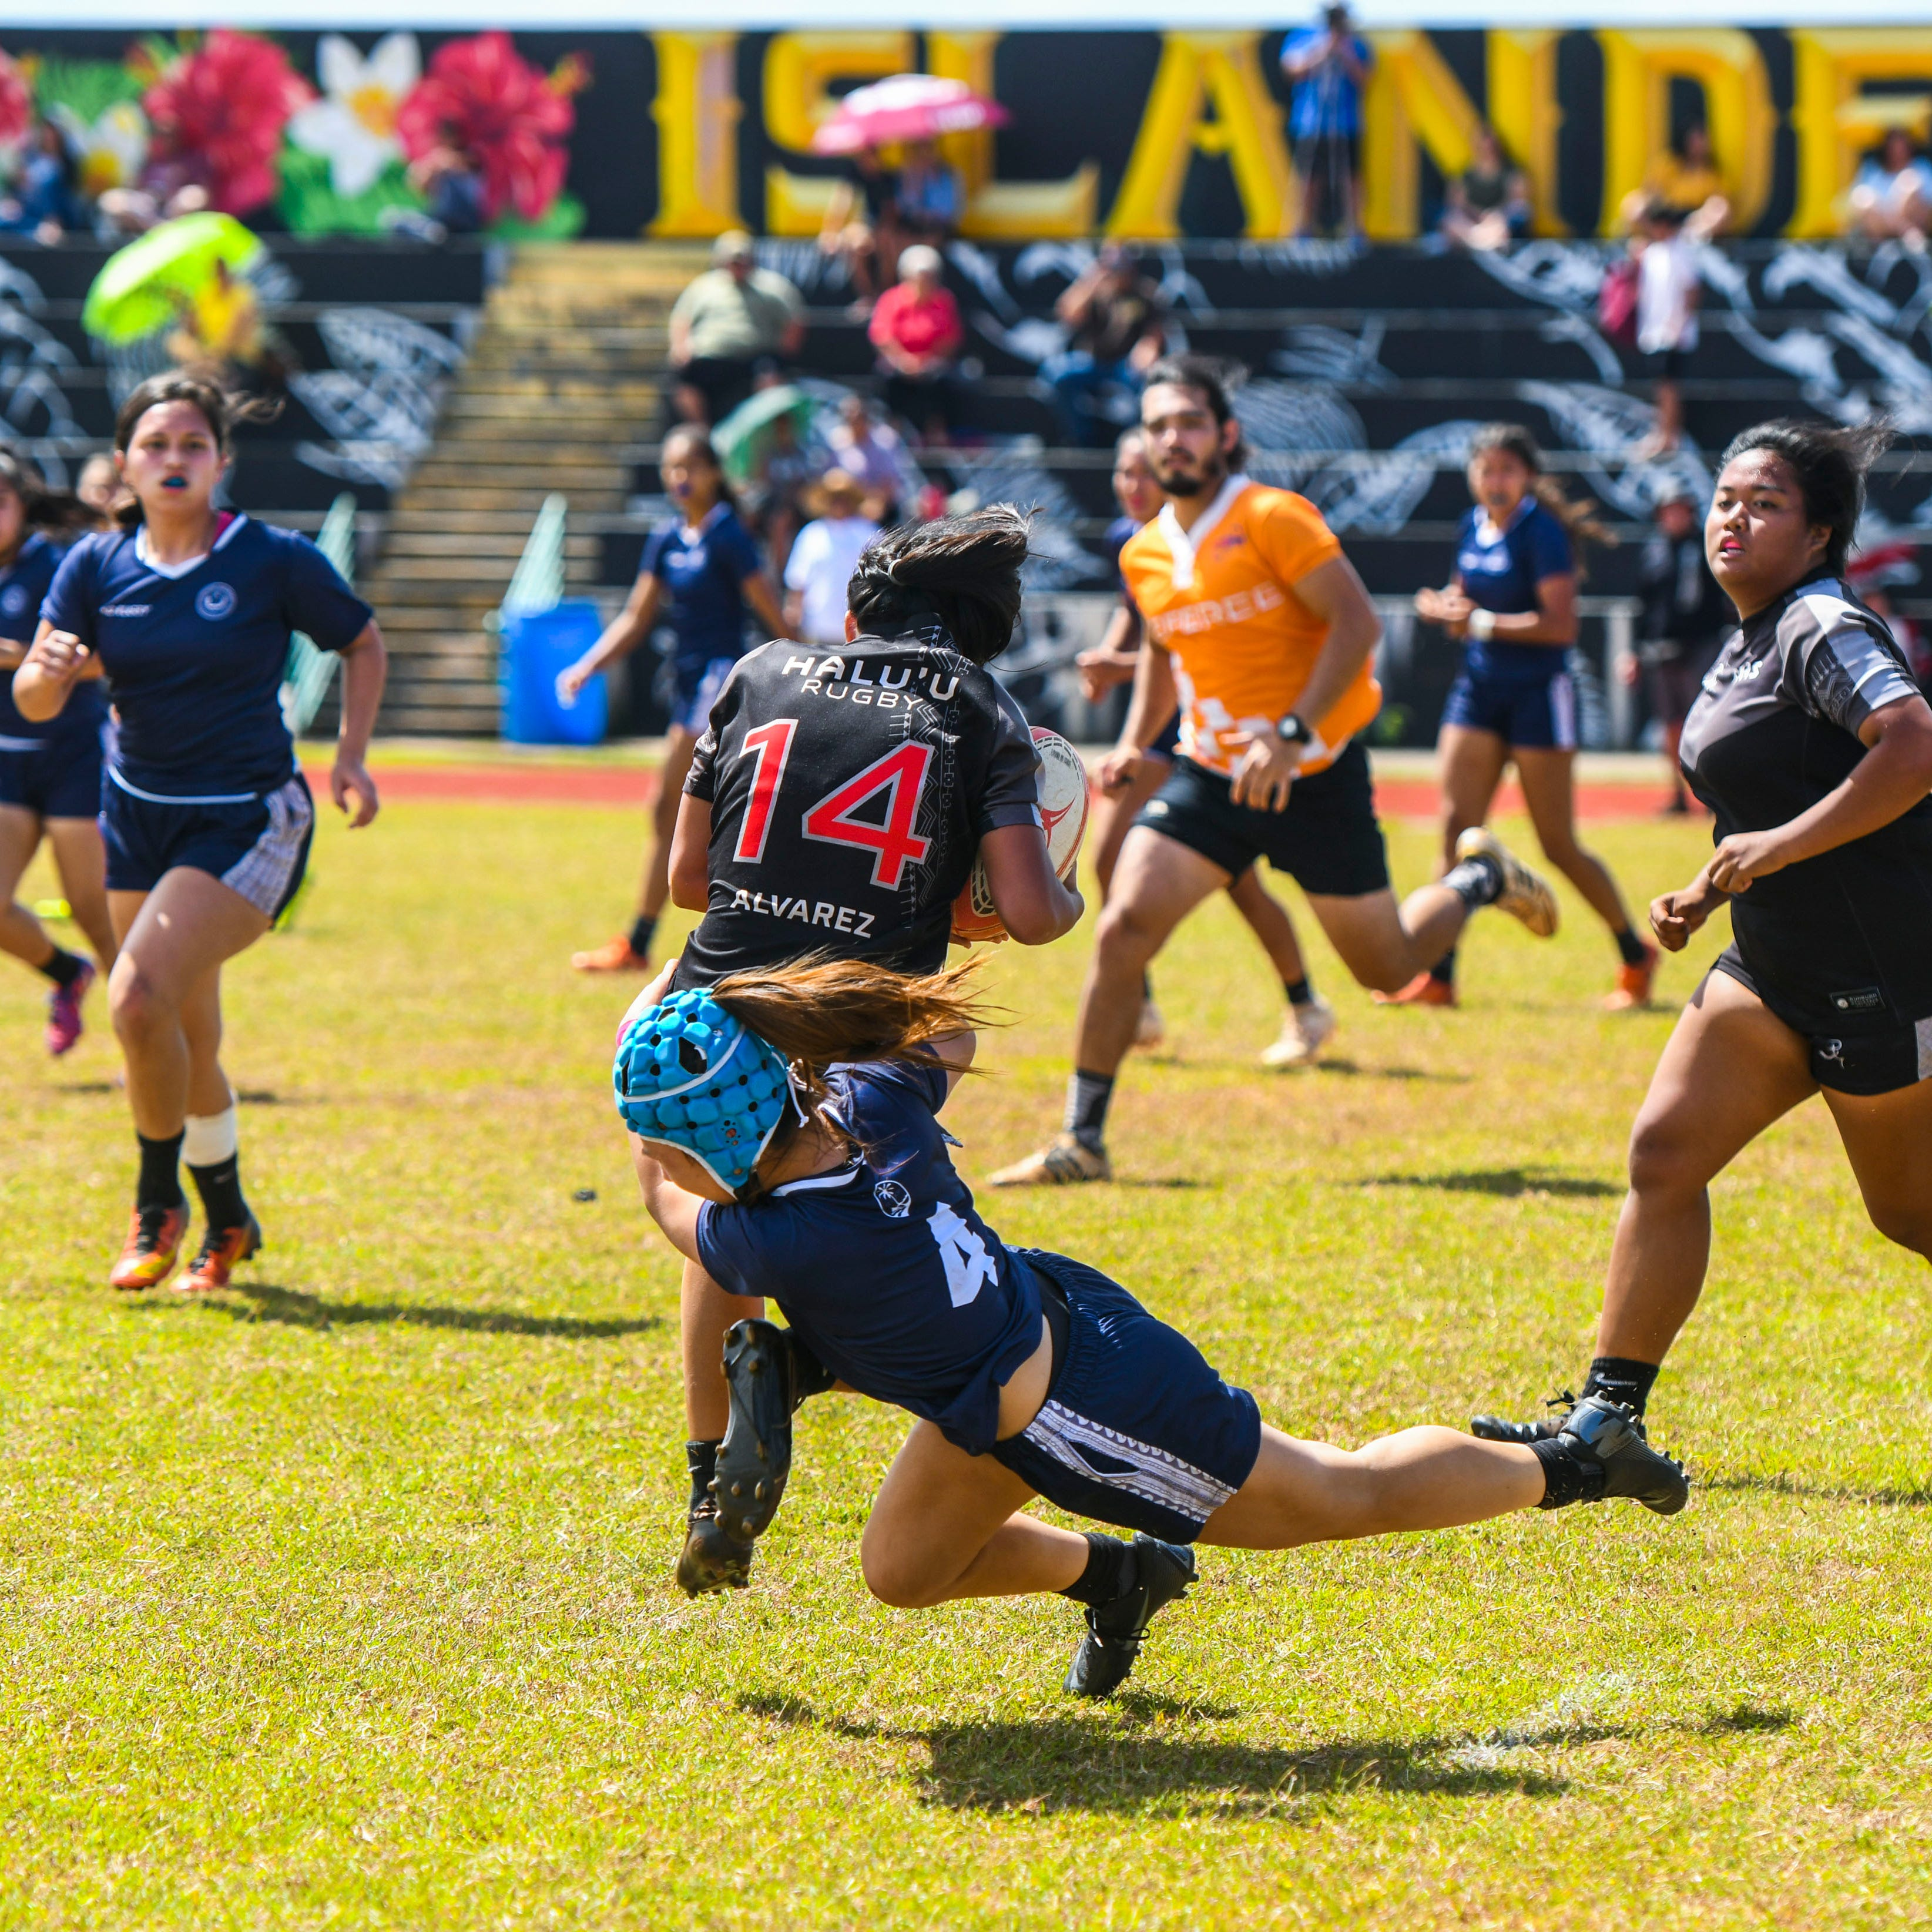 Royals remain undefeated in girls rugby, GW in second